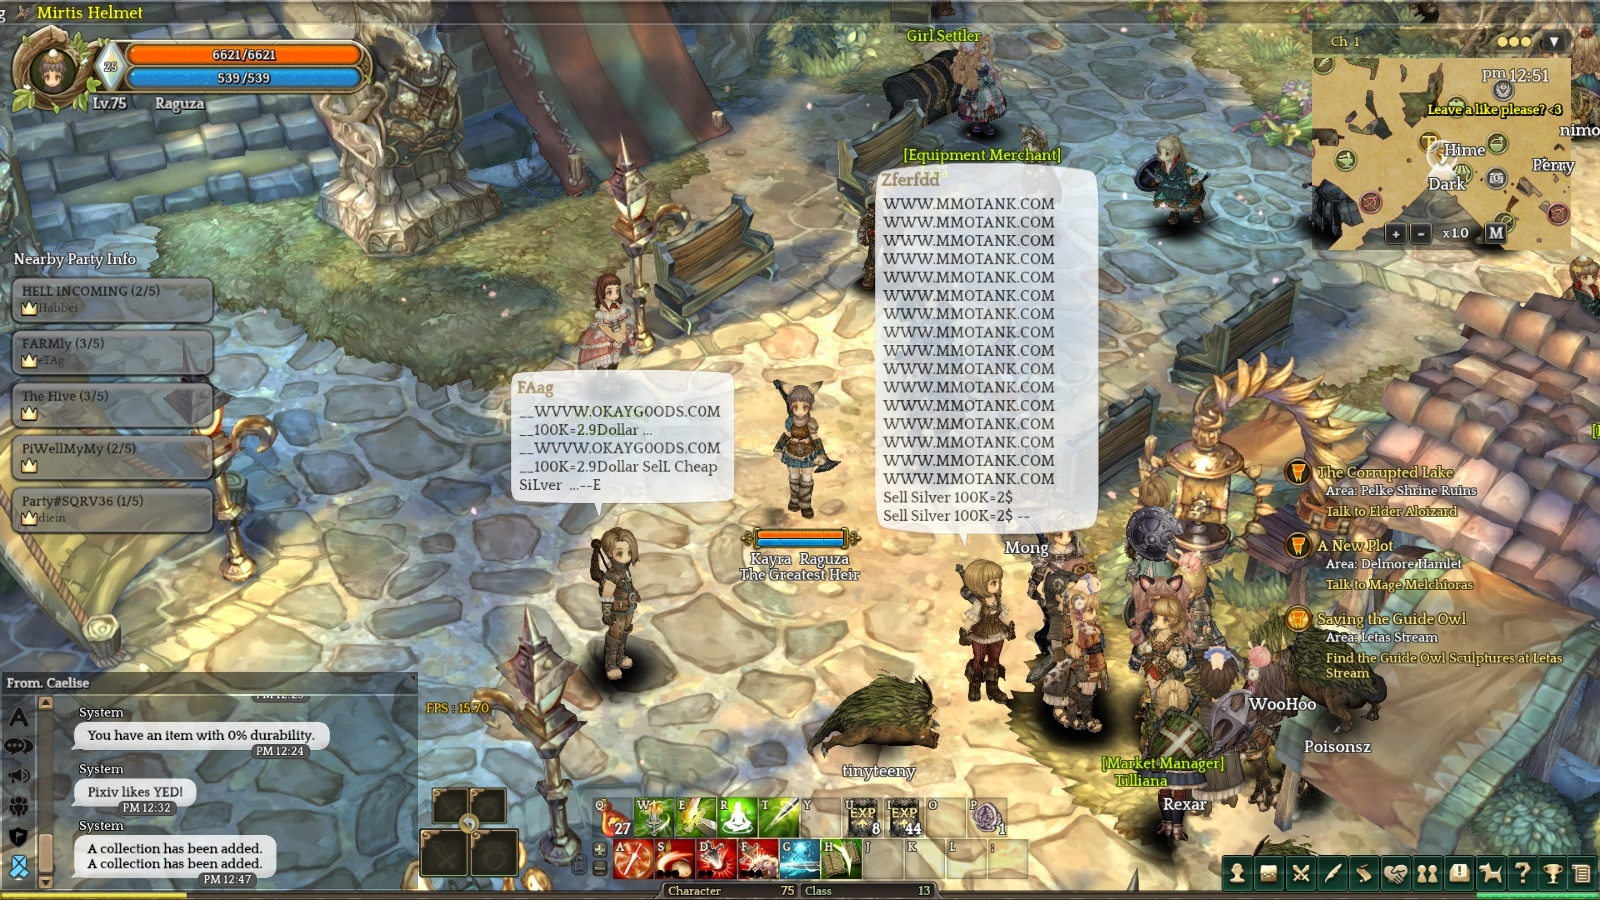 Report] Chat spam bot - General Discussion - Tree of Savior